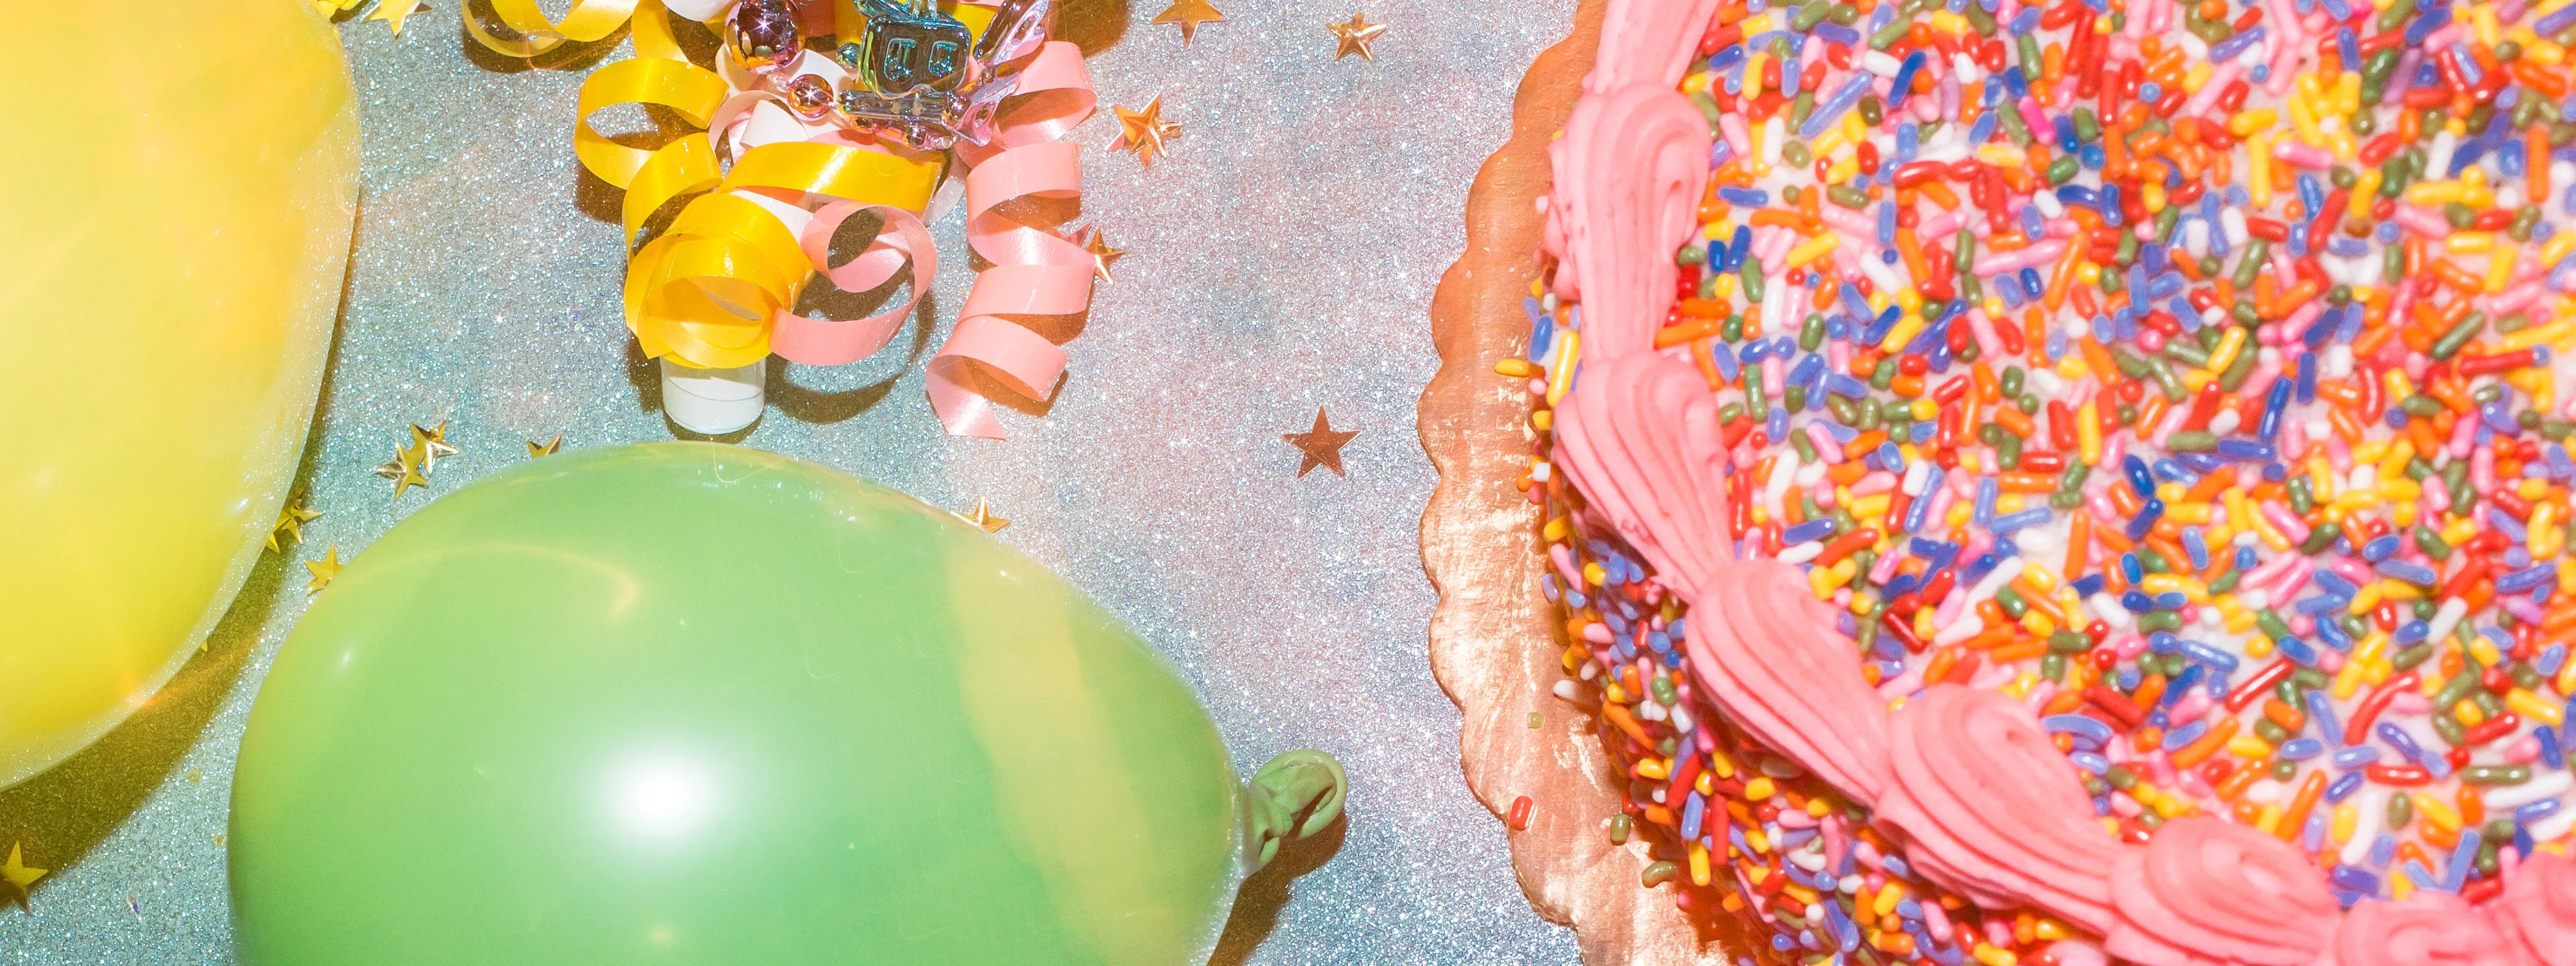 13 Things To Do On Your Birthday Alone Self